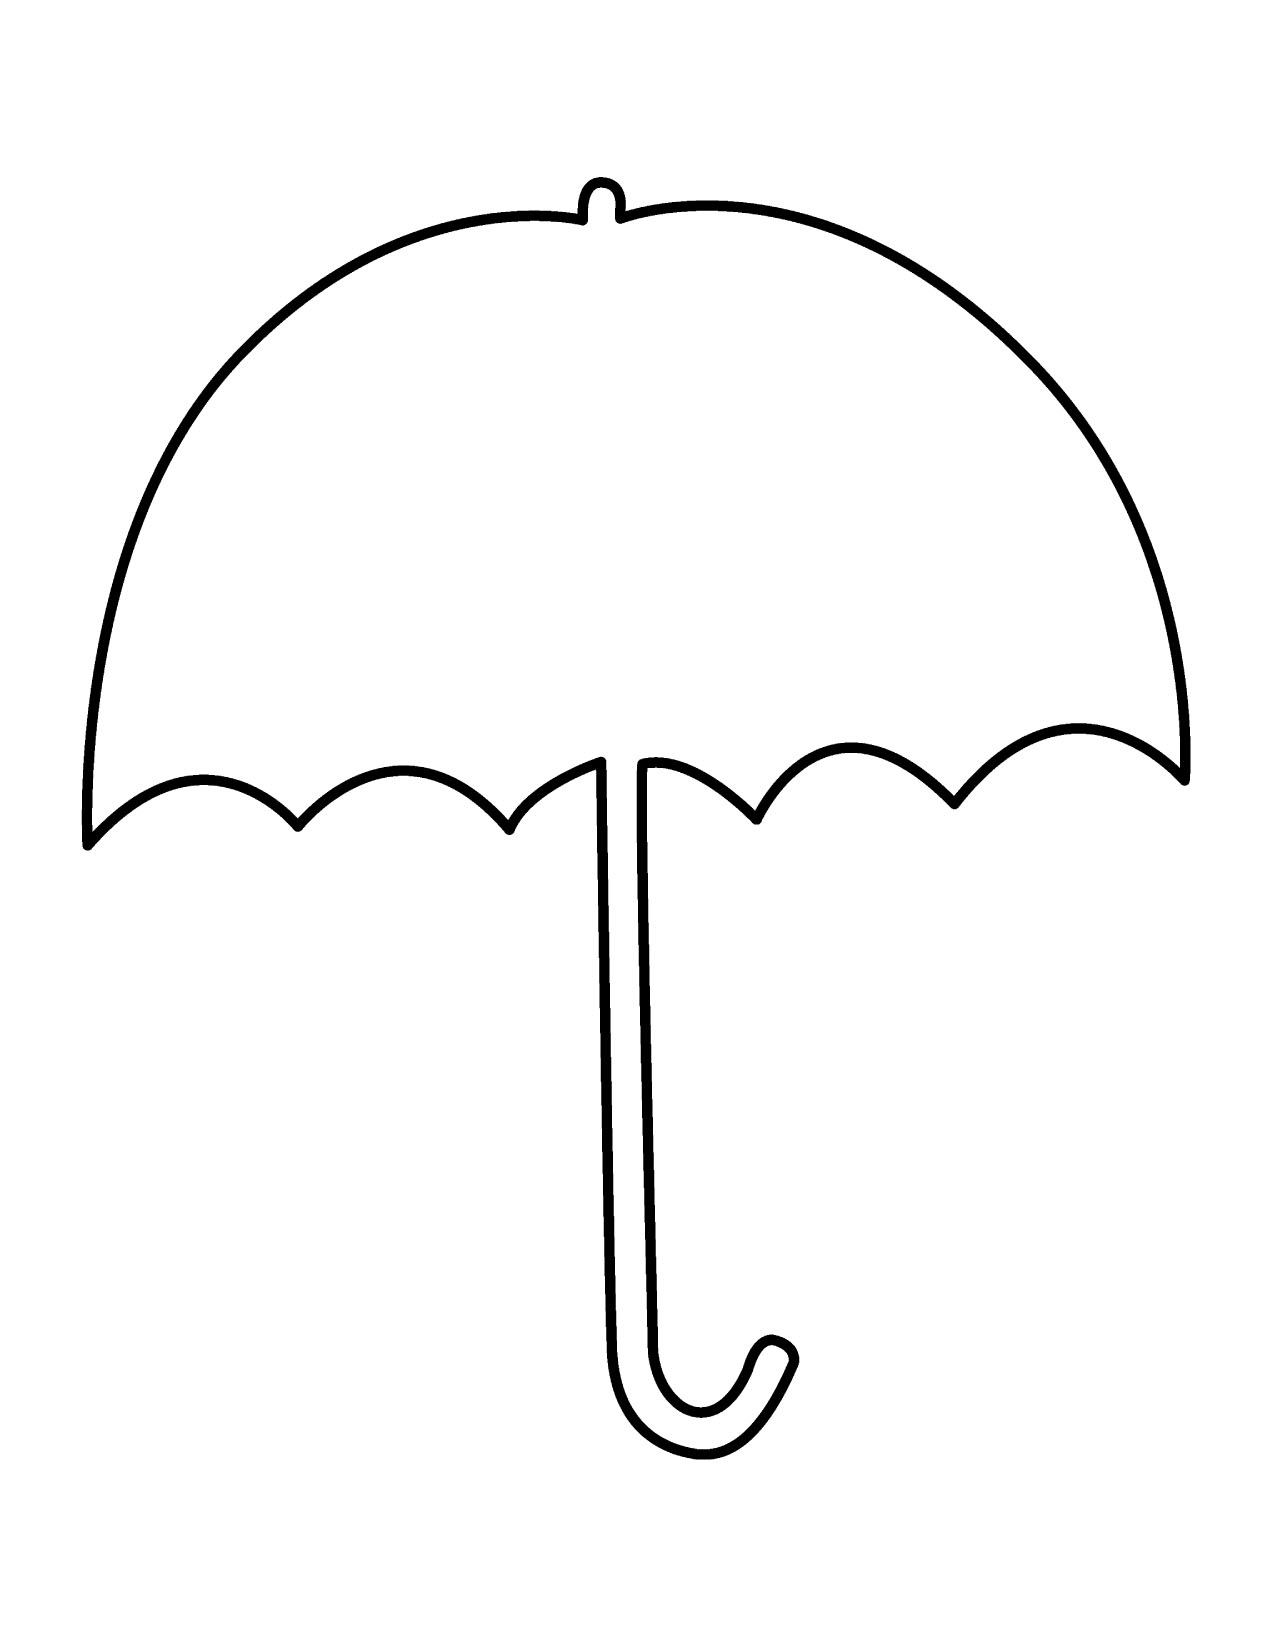 Clipart ETMA9dyoc on Coloring Page Of An Umbrella With Raindrops